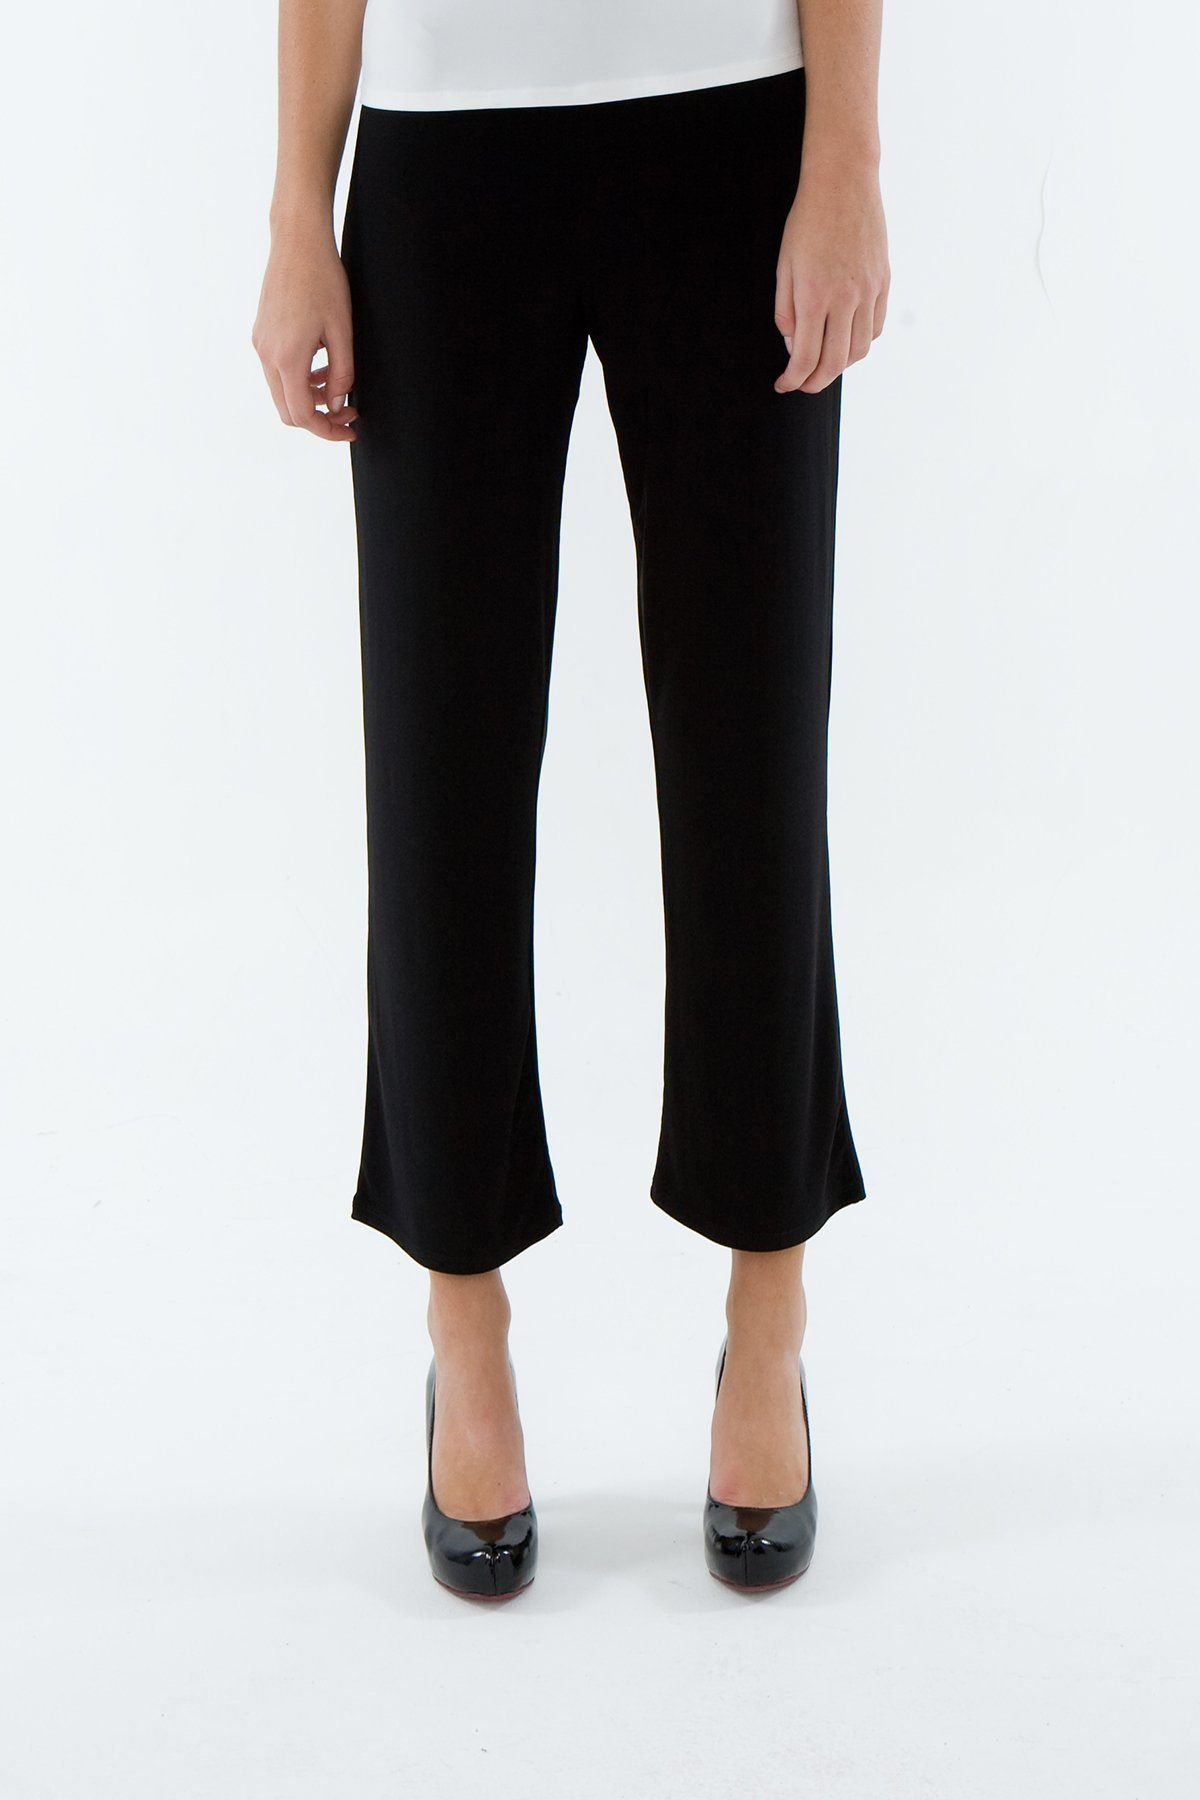 3/4 Pants - Women's Clothing -ROSARINI